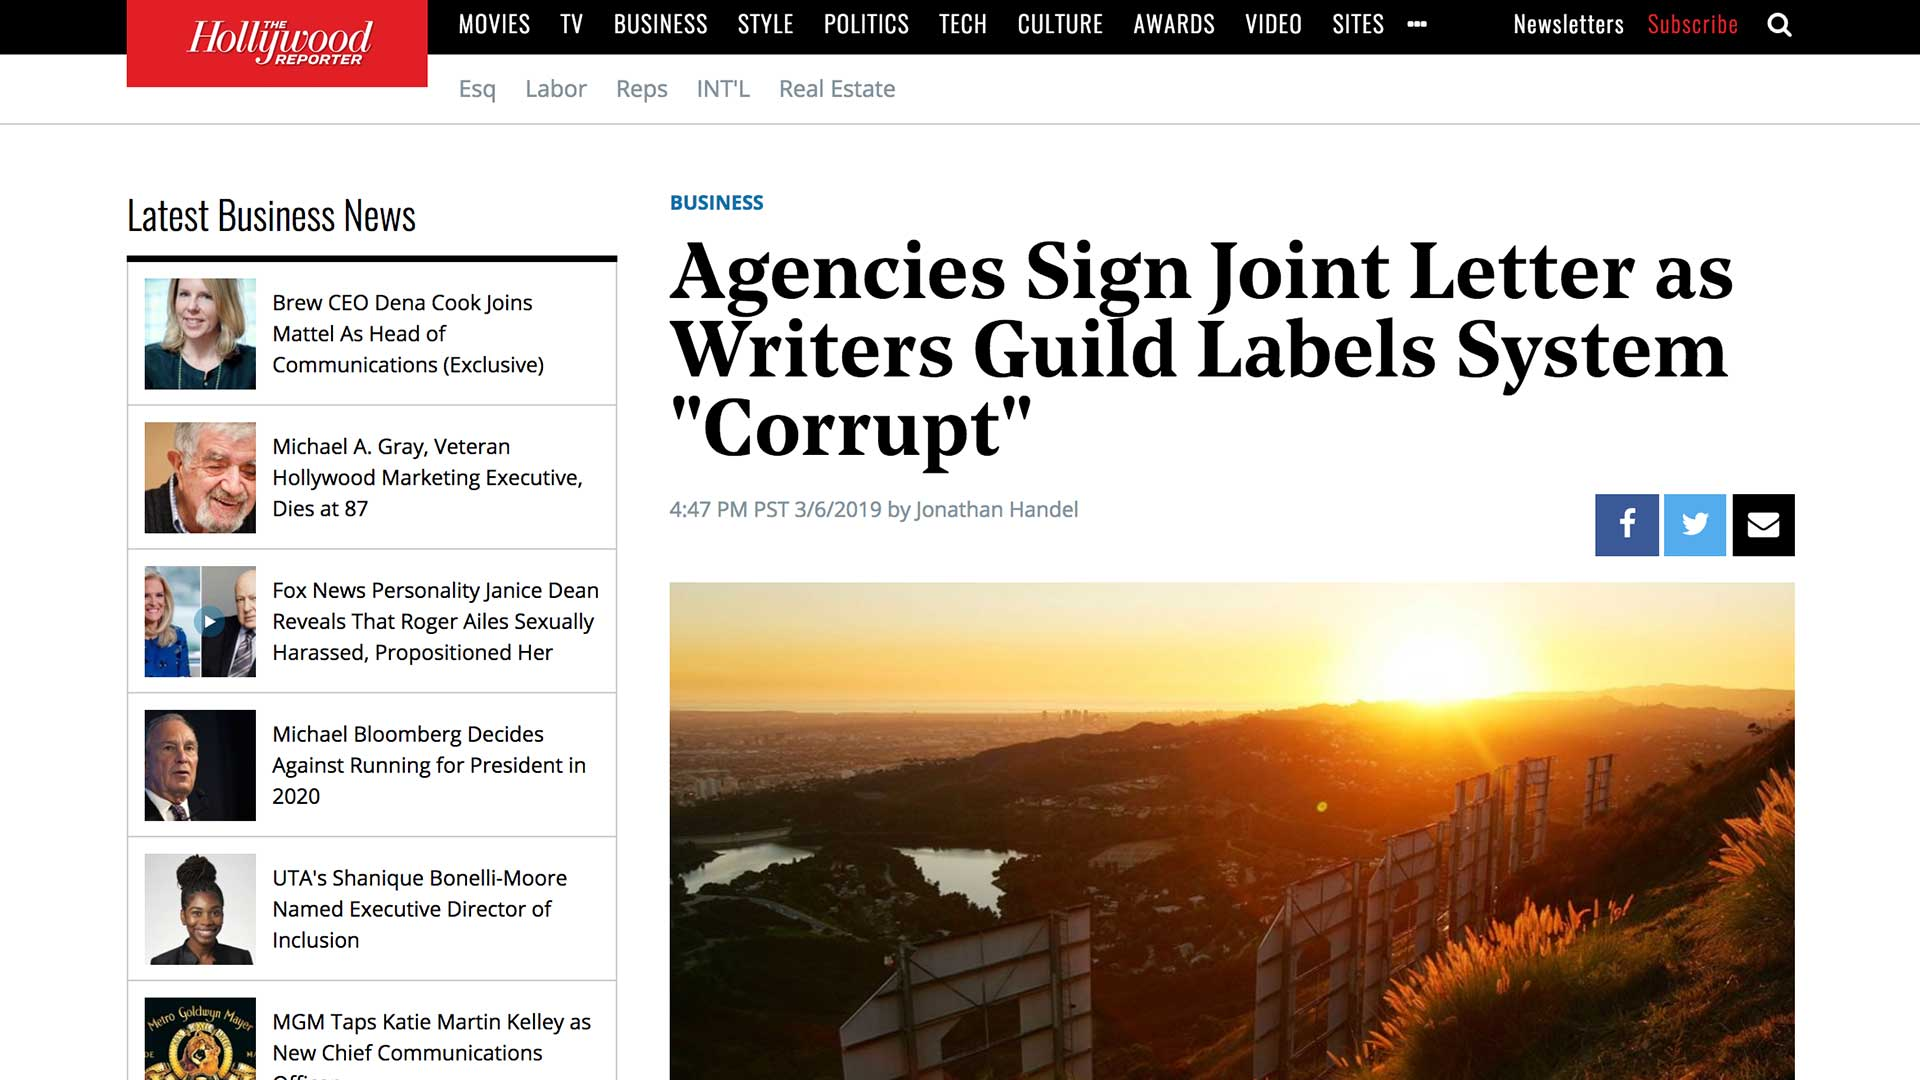 """Fairness Rocks News Agencies Sign Joint Letter as Writers Guild Labels System """"Corrupt"""""""